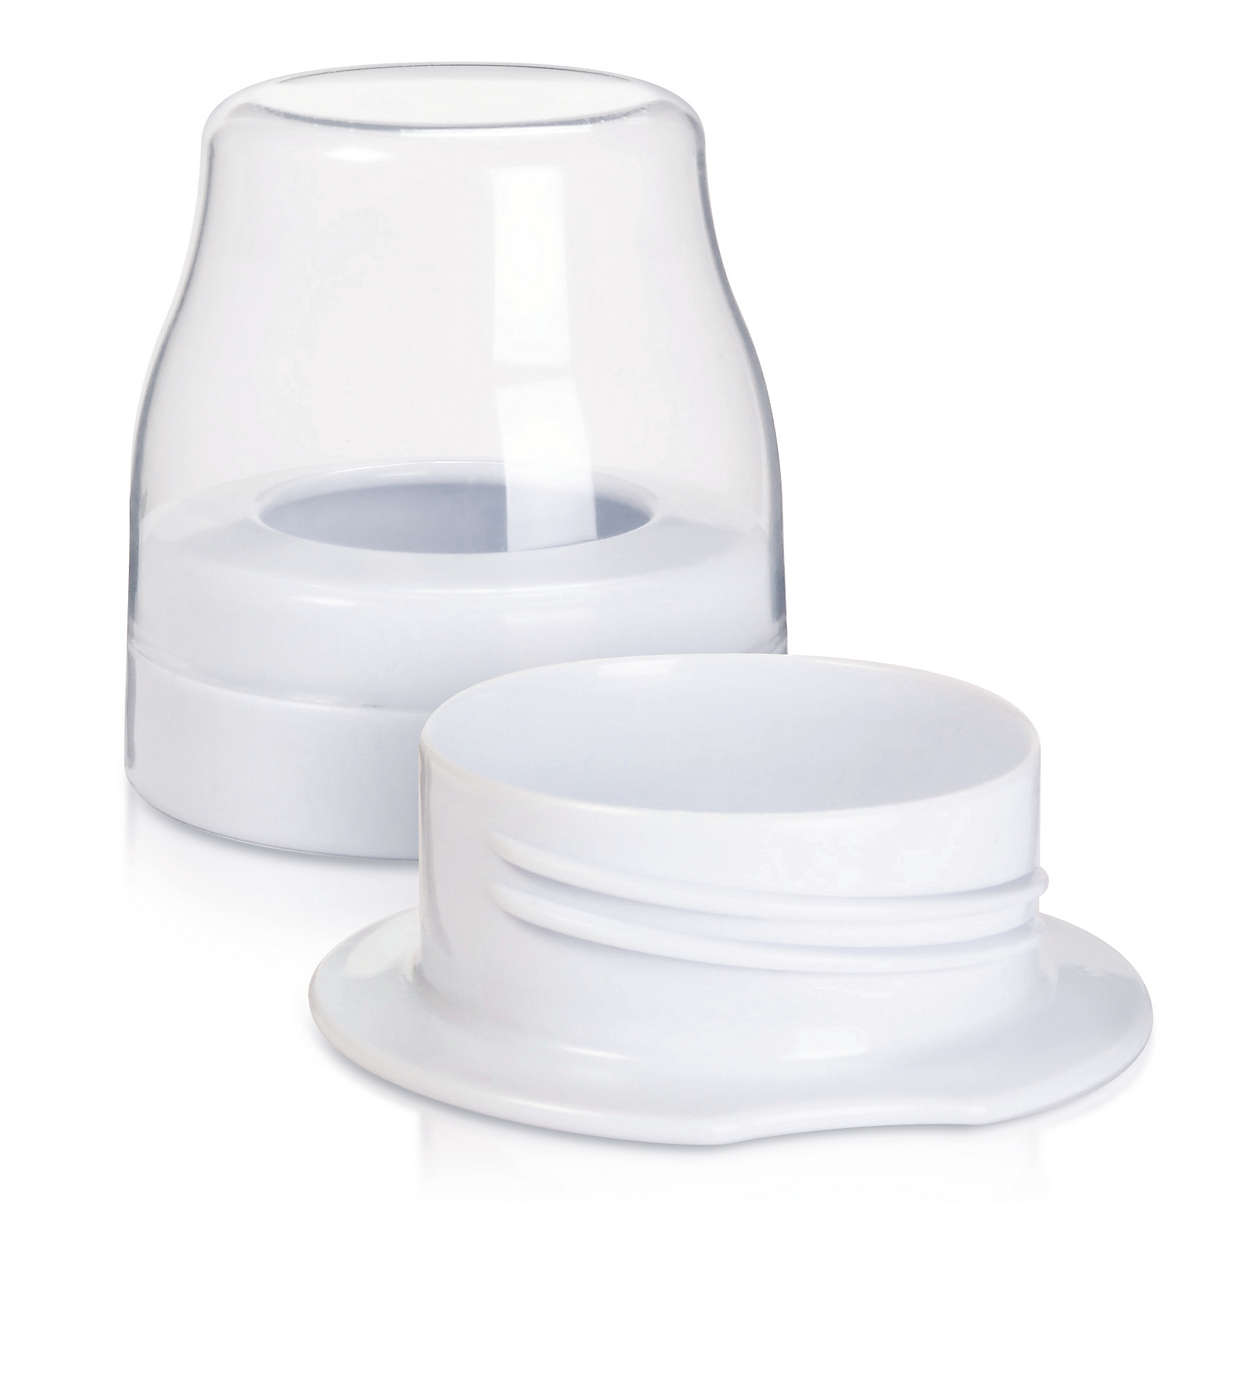 Keeps AVENT teats sterile for up to 24 hours